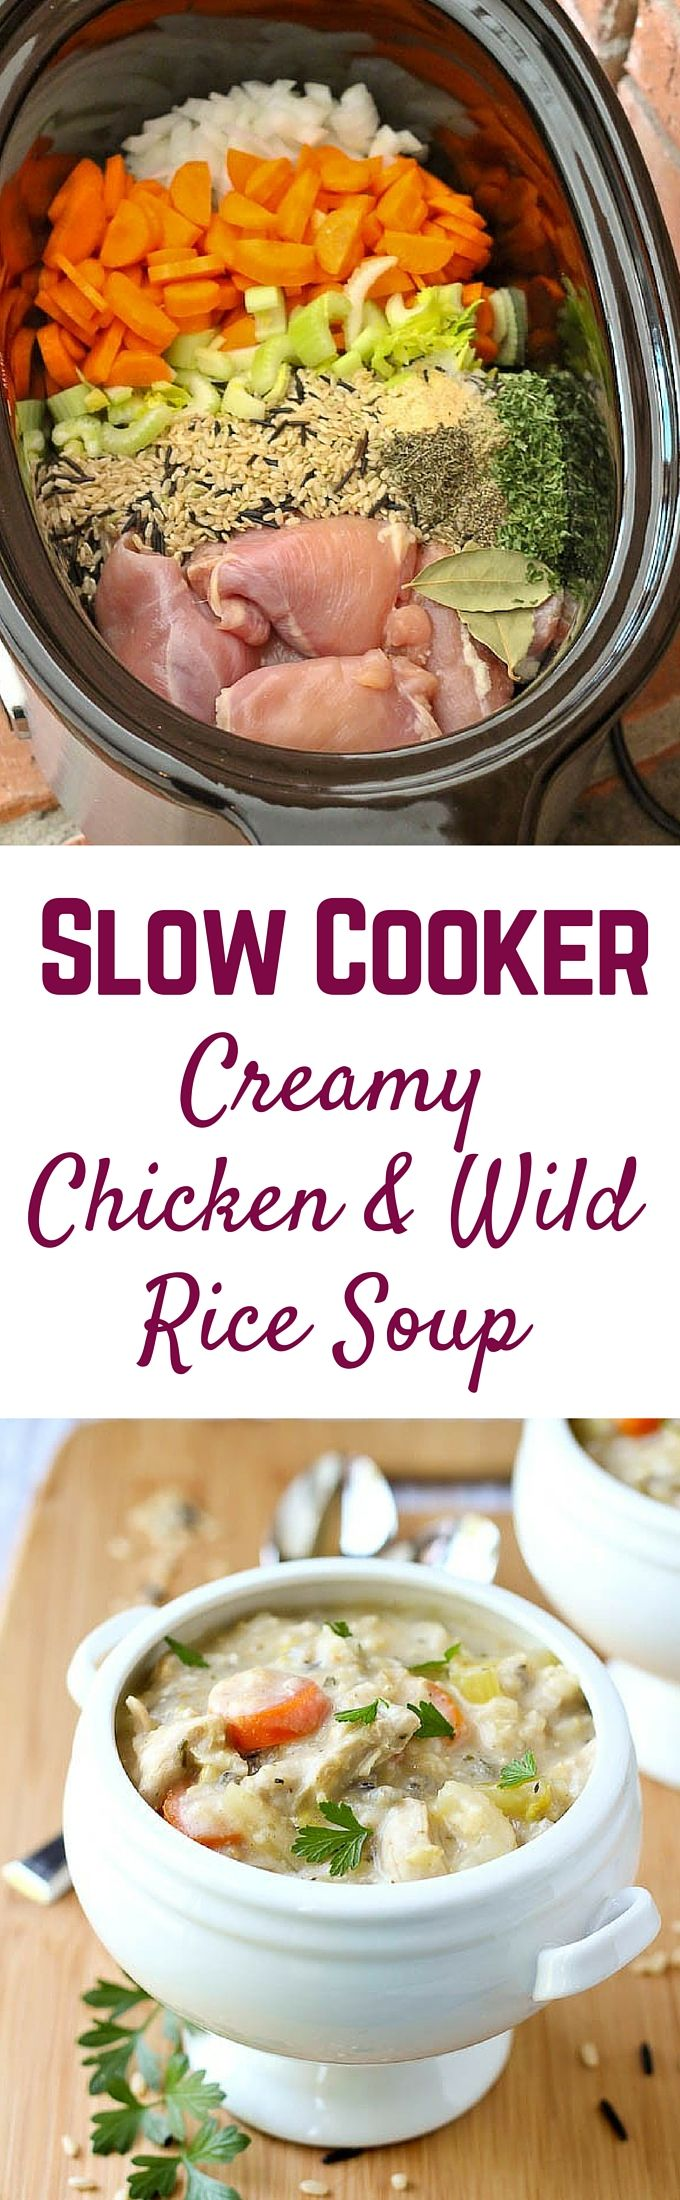 Slow Cooker Creamy Chicken and Wild Rice Soup | Recipe ...